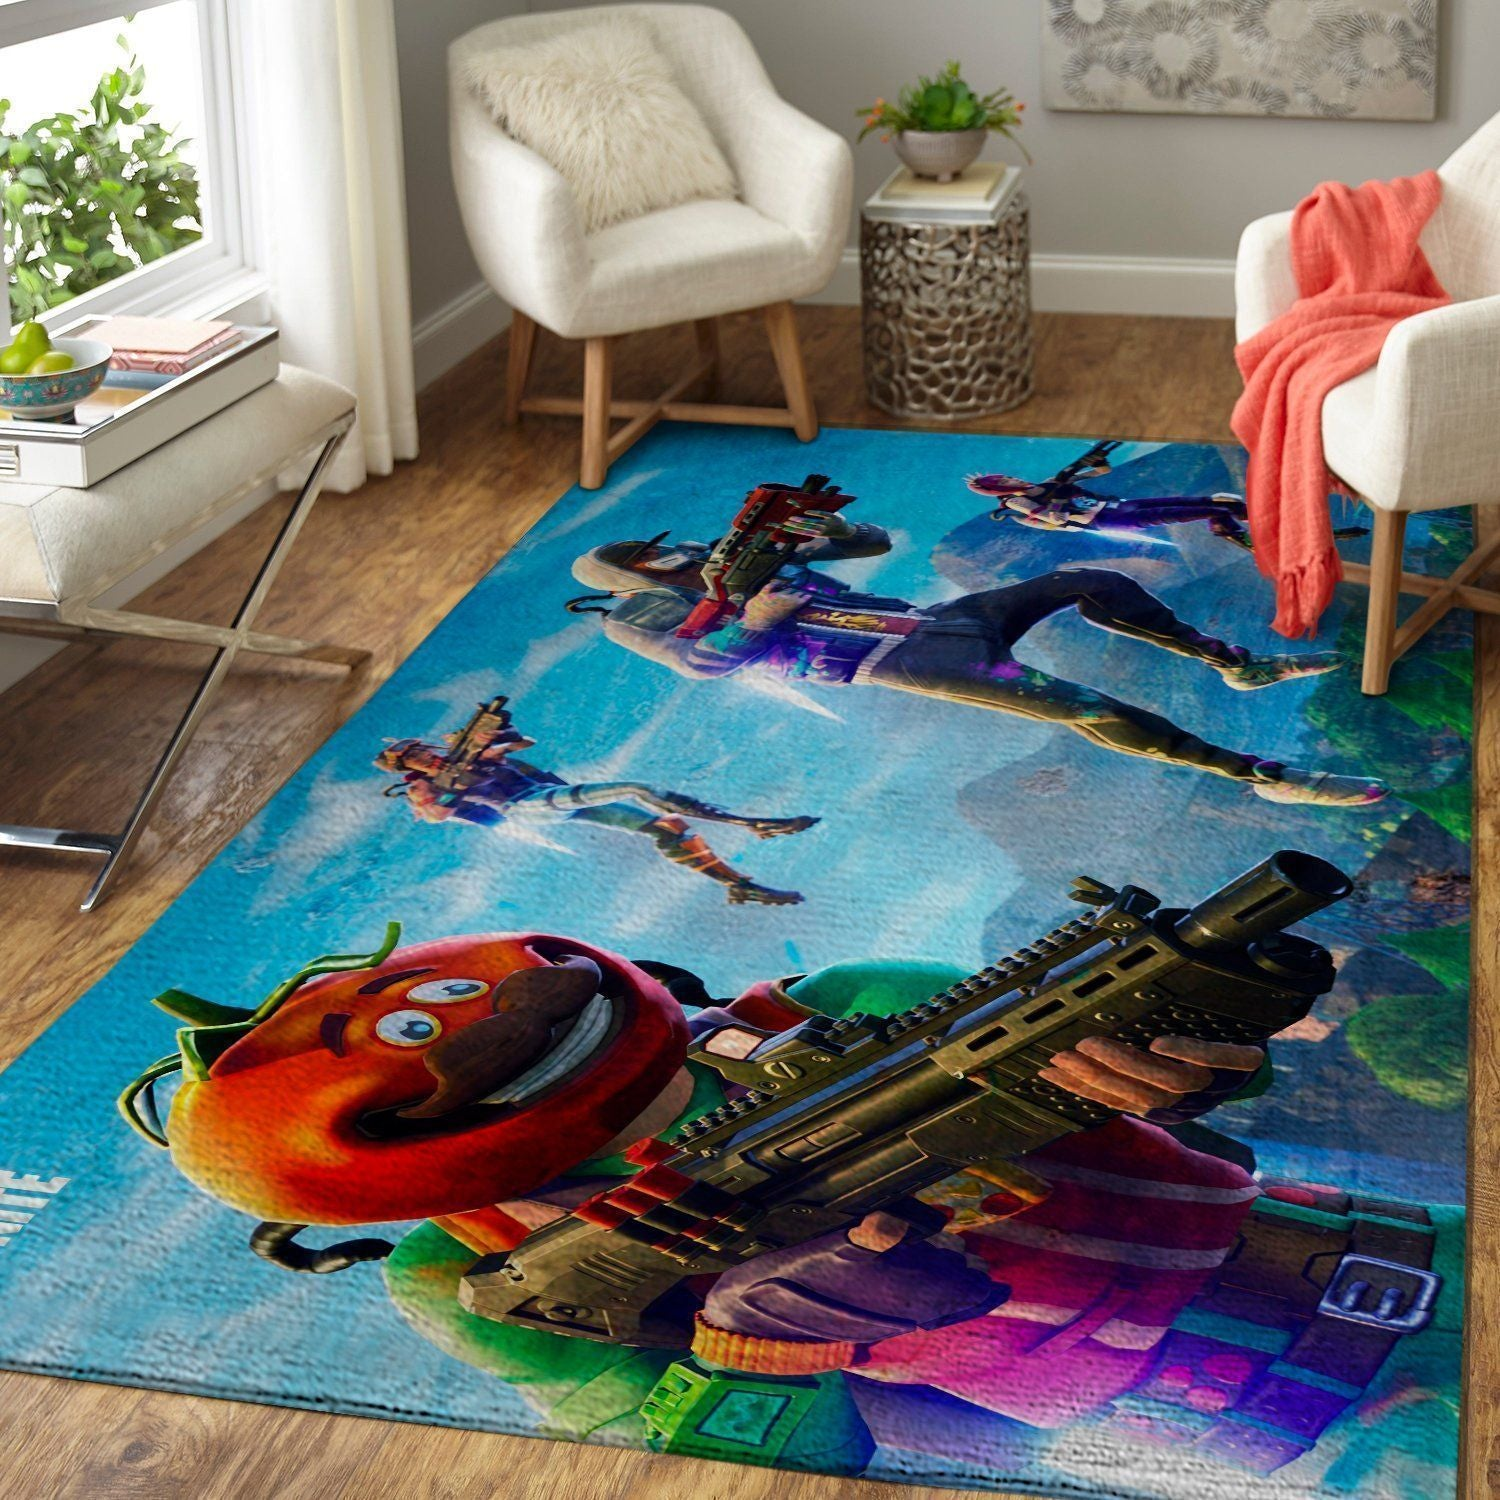 Fortnite Area Rug Video Game Carpet, Gamer Living Room Rugs, Floor Decor F251015